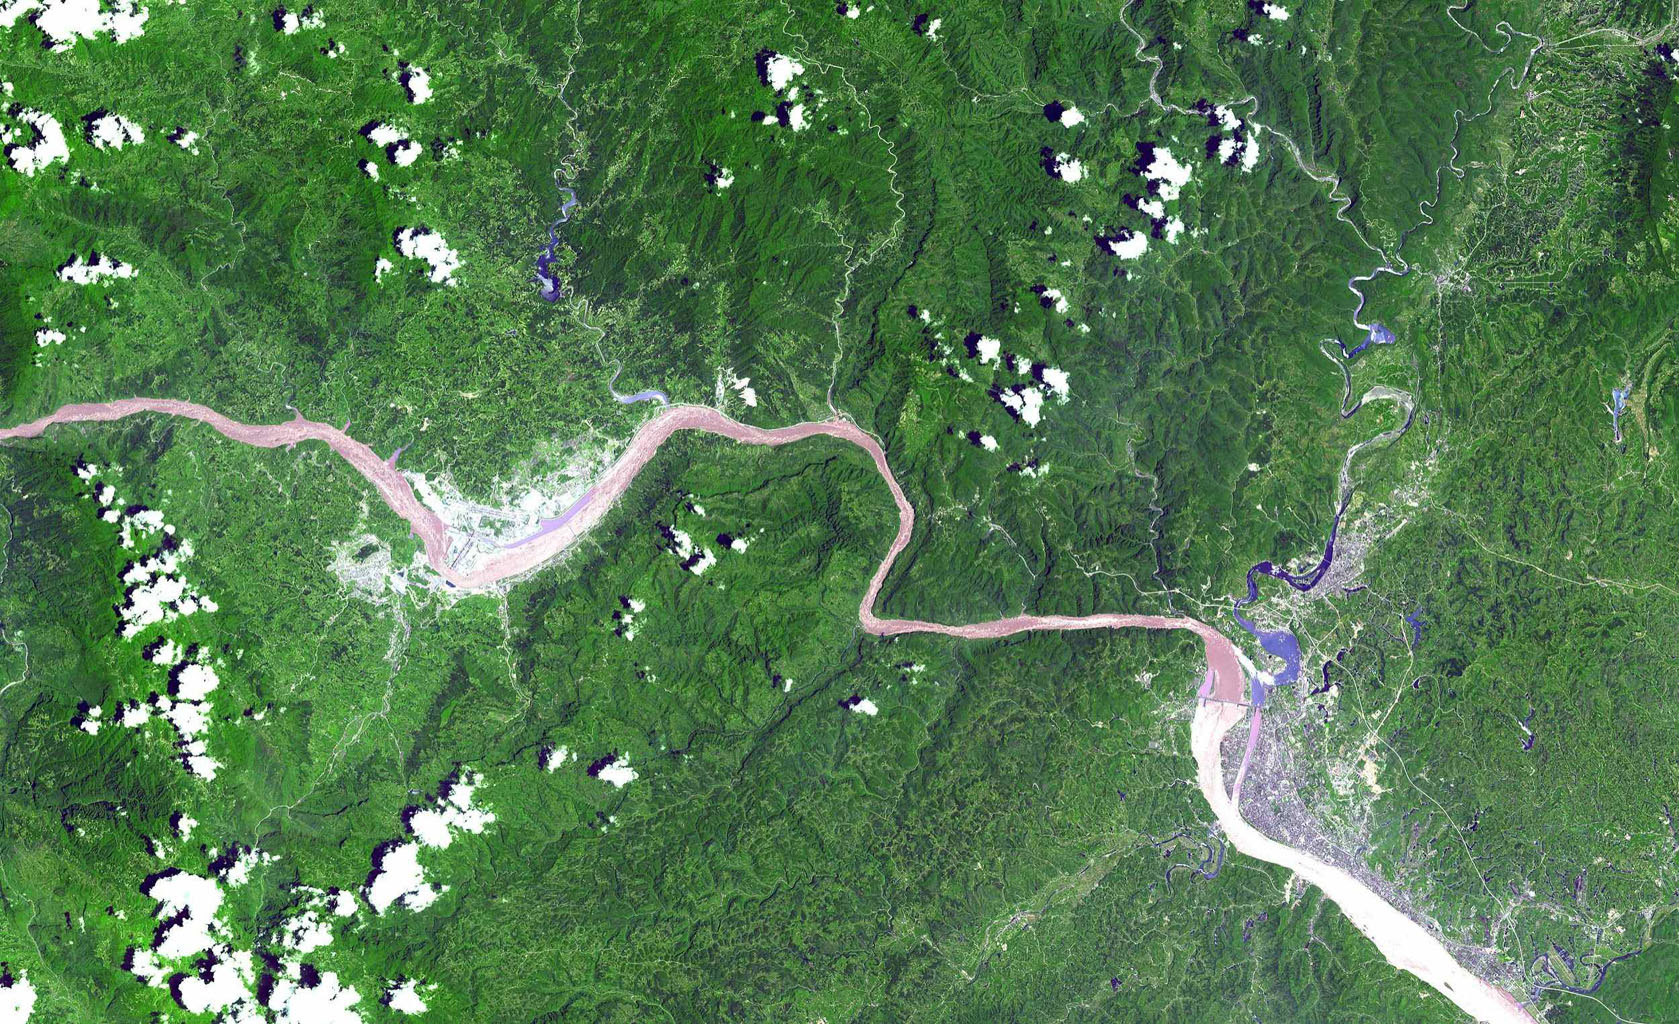 This image from NASA's Terra spacecraft shows a 60 km stretch of the Yangtze River in China, including the Xiling Gorge, the eastern of the three gorges. At left of image is the construction site of theThree Gorges Dam, the world's largest.